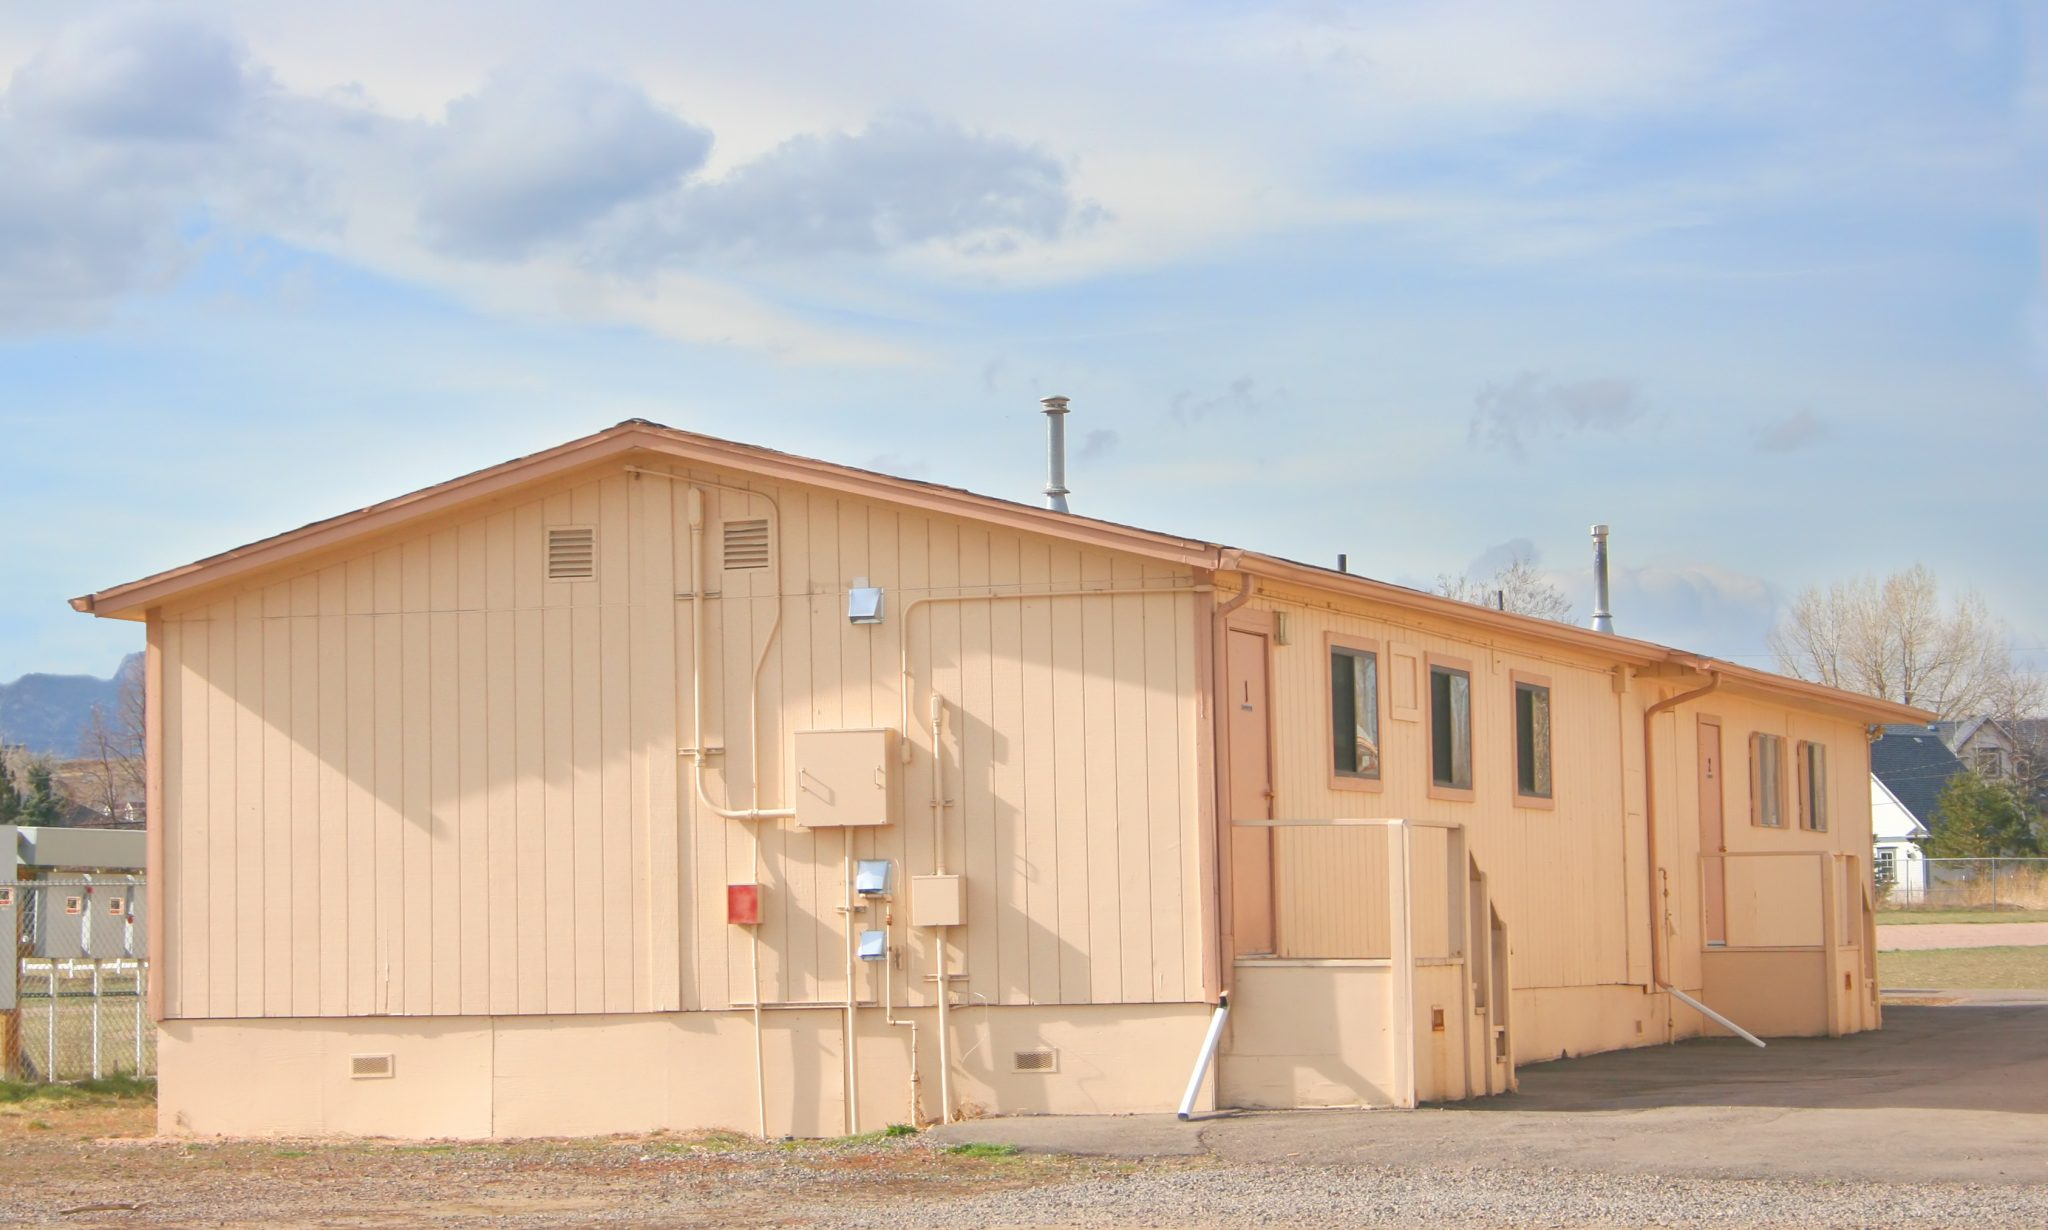 Vital Questions Before Investing In A Modular School Addition